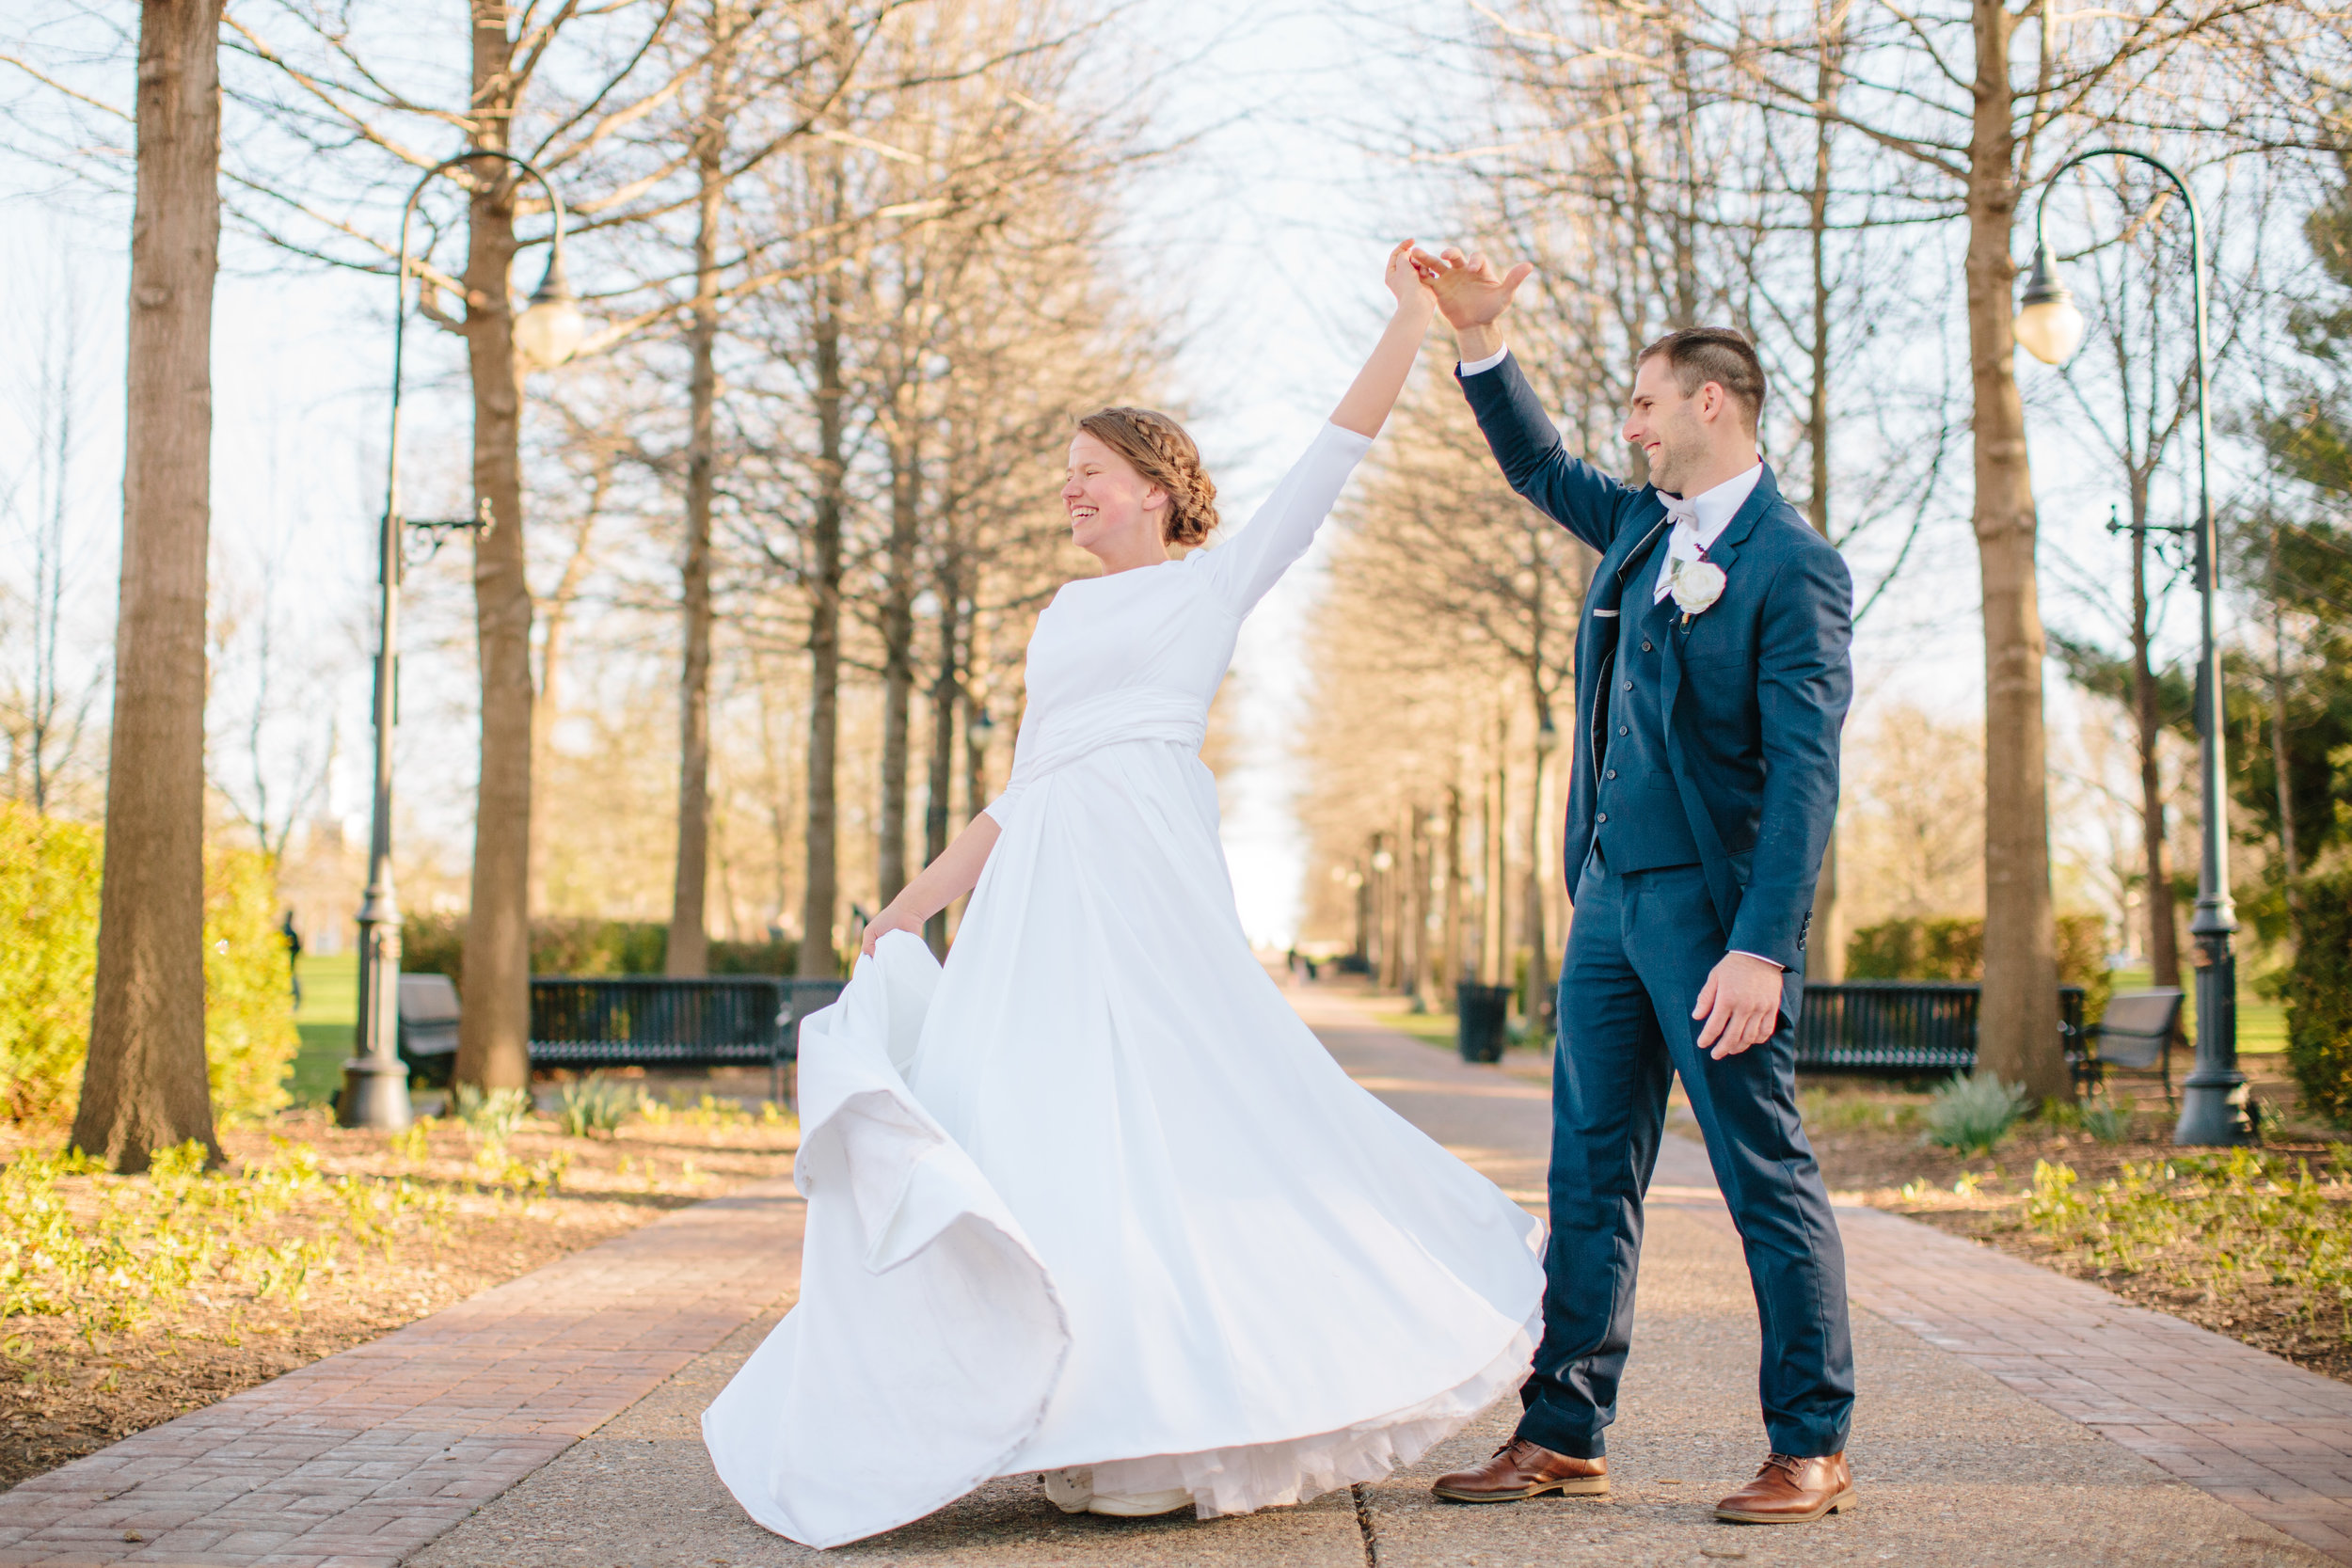 des moines wedding photographers romantic soft light and airy classic